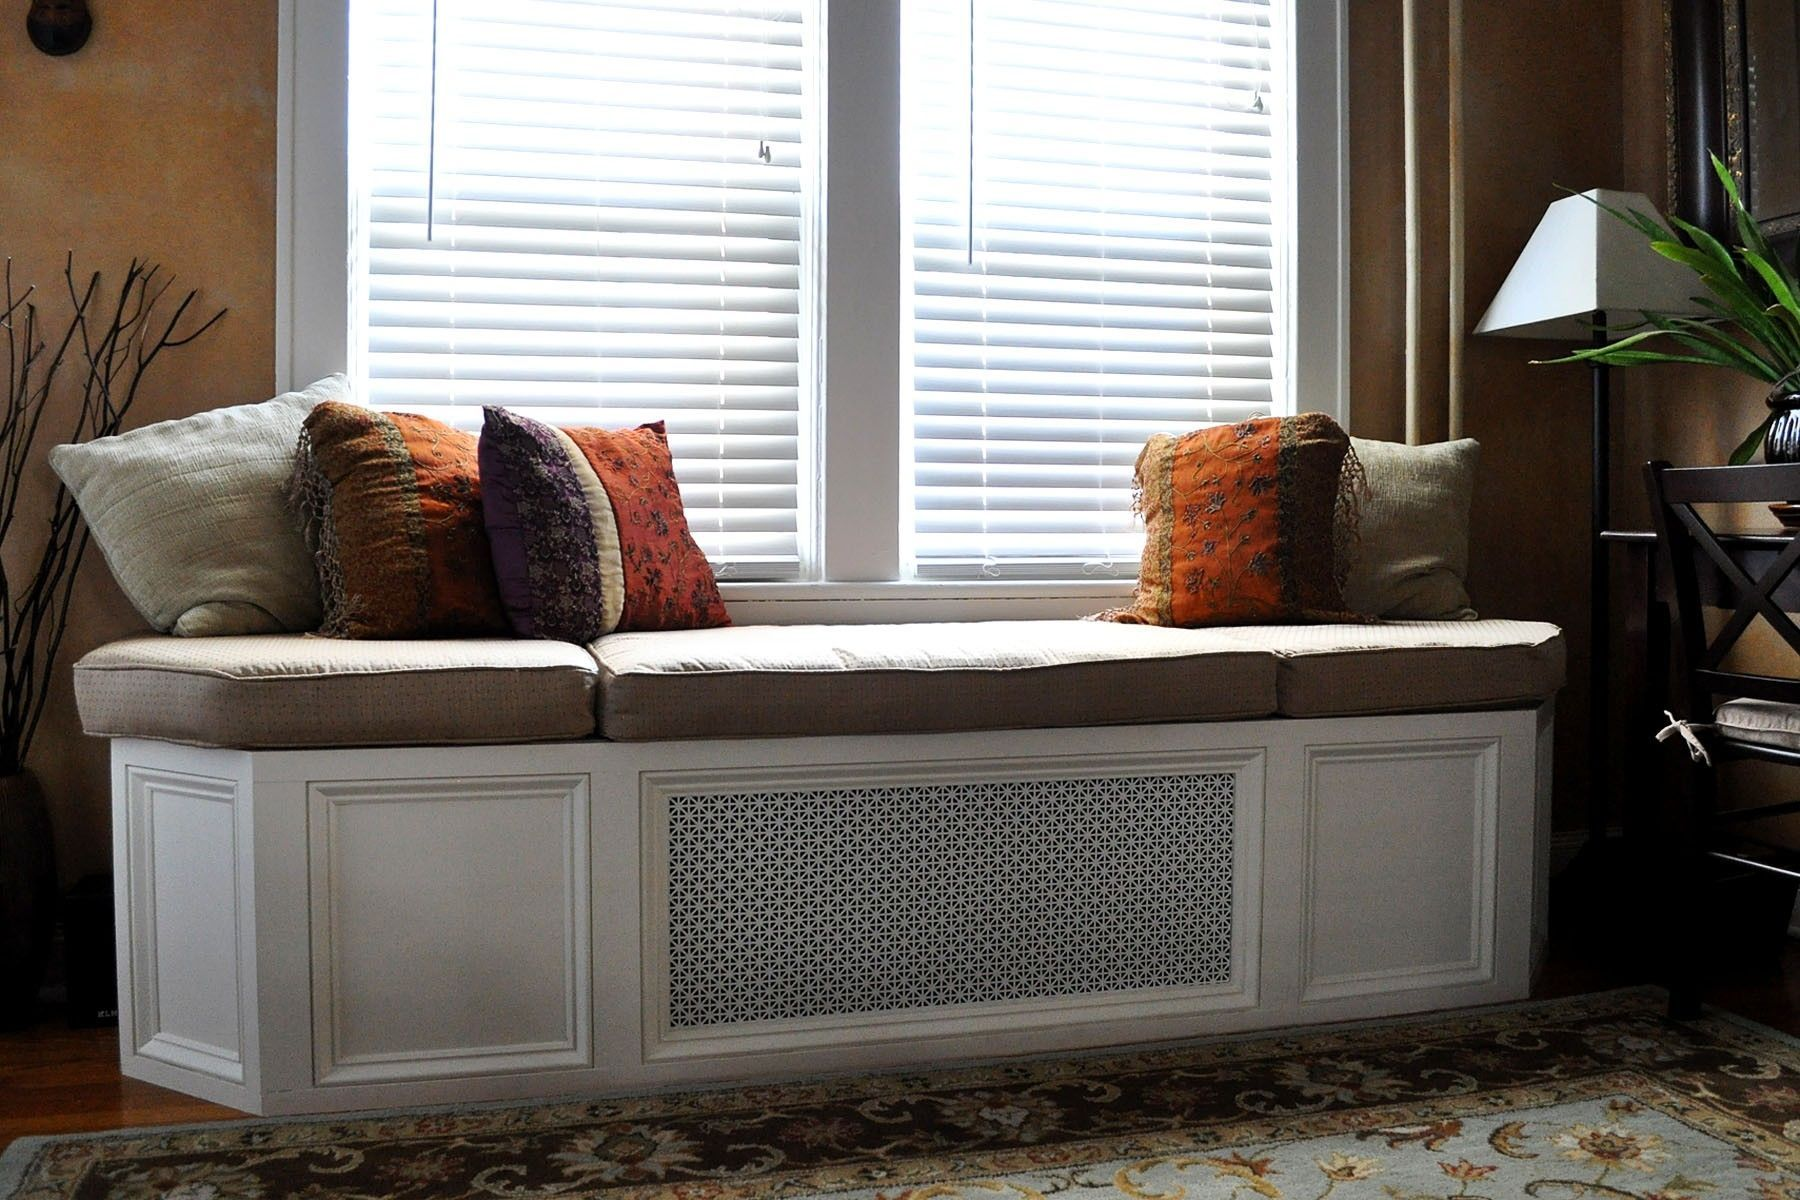 Built In Bench Diy Wooden Window Bench Seat With Storage Here Is A Great Do It